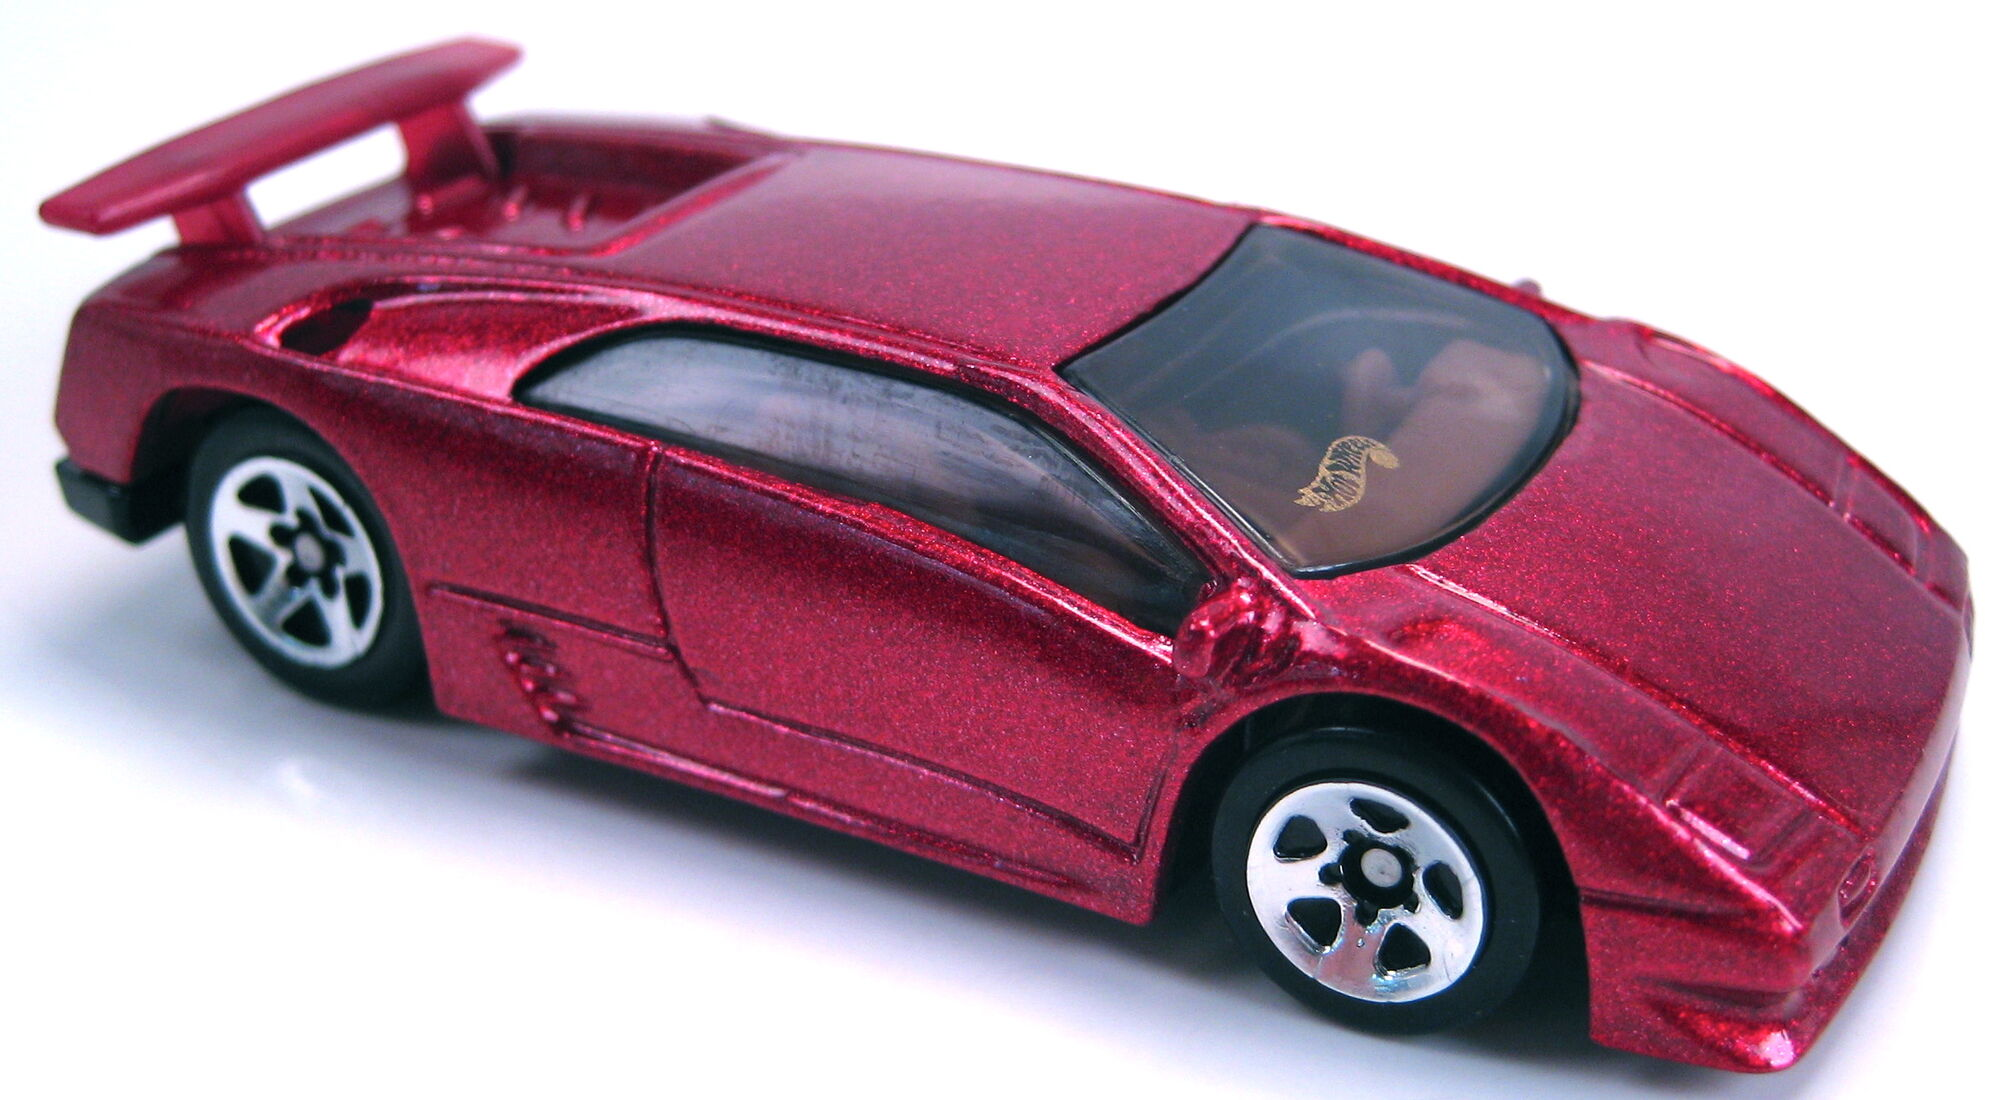 lamborghini diablo hot wheels wiki fandom powered by wikia. Black Bedroom Furniture Sets. Home Design Ideas